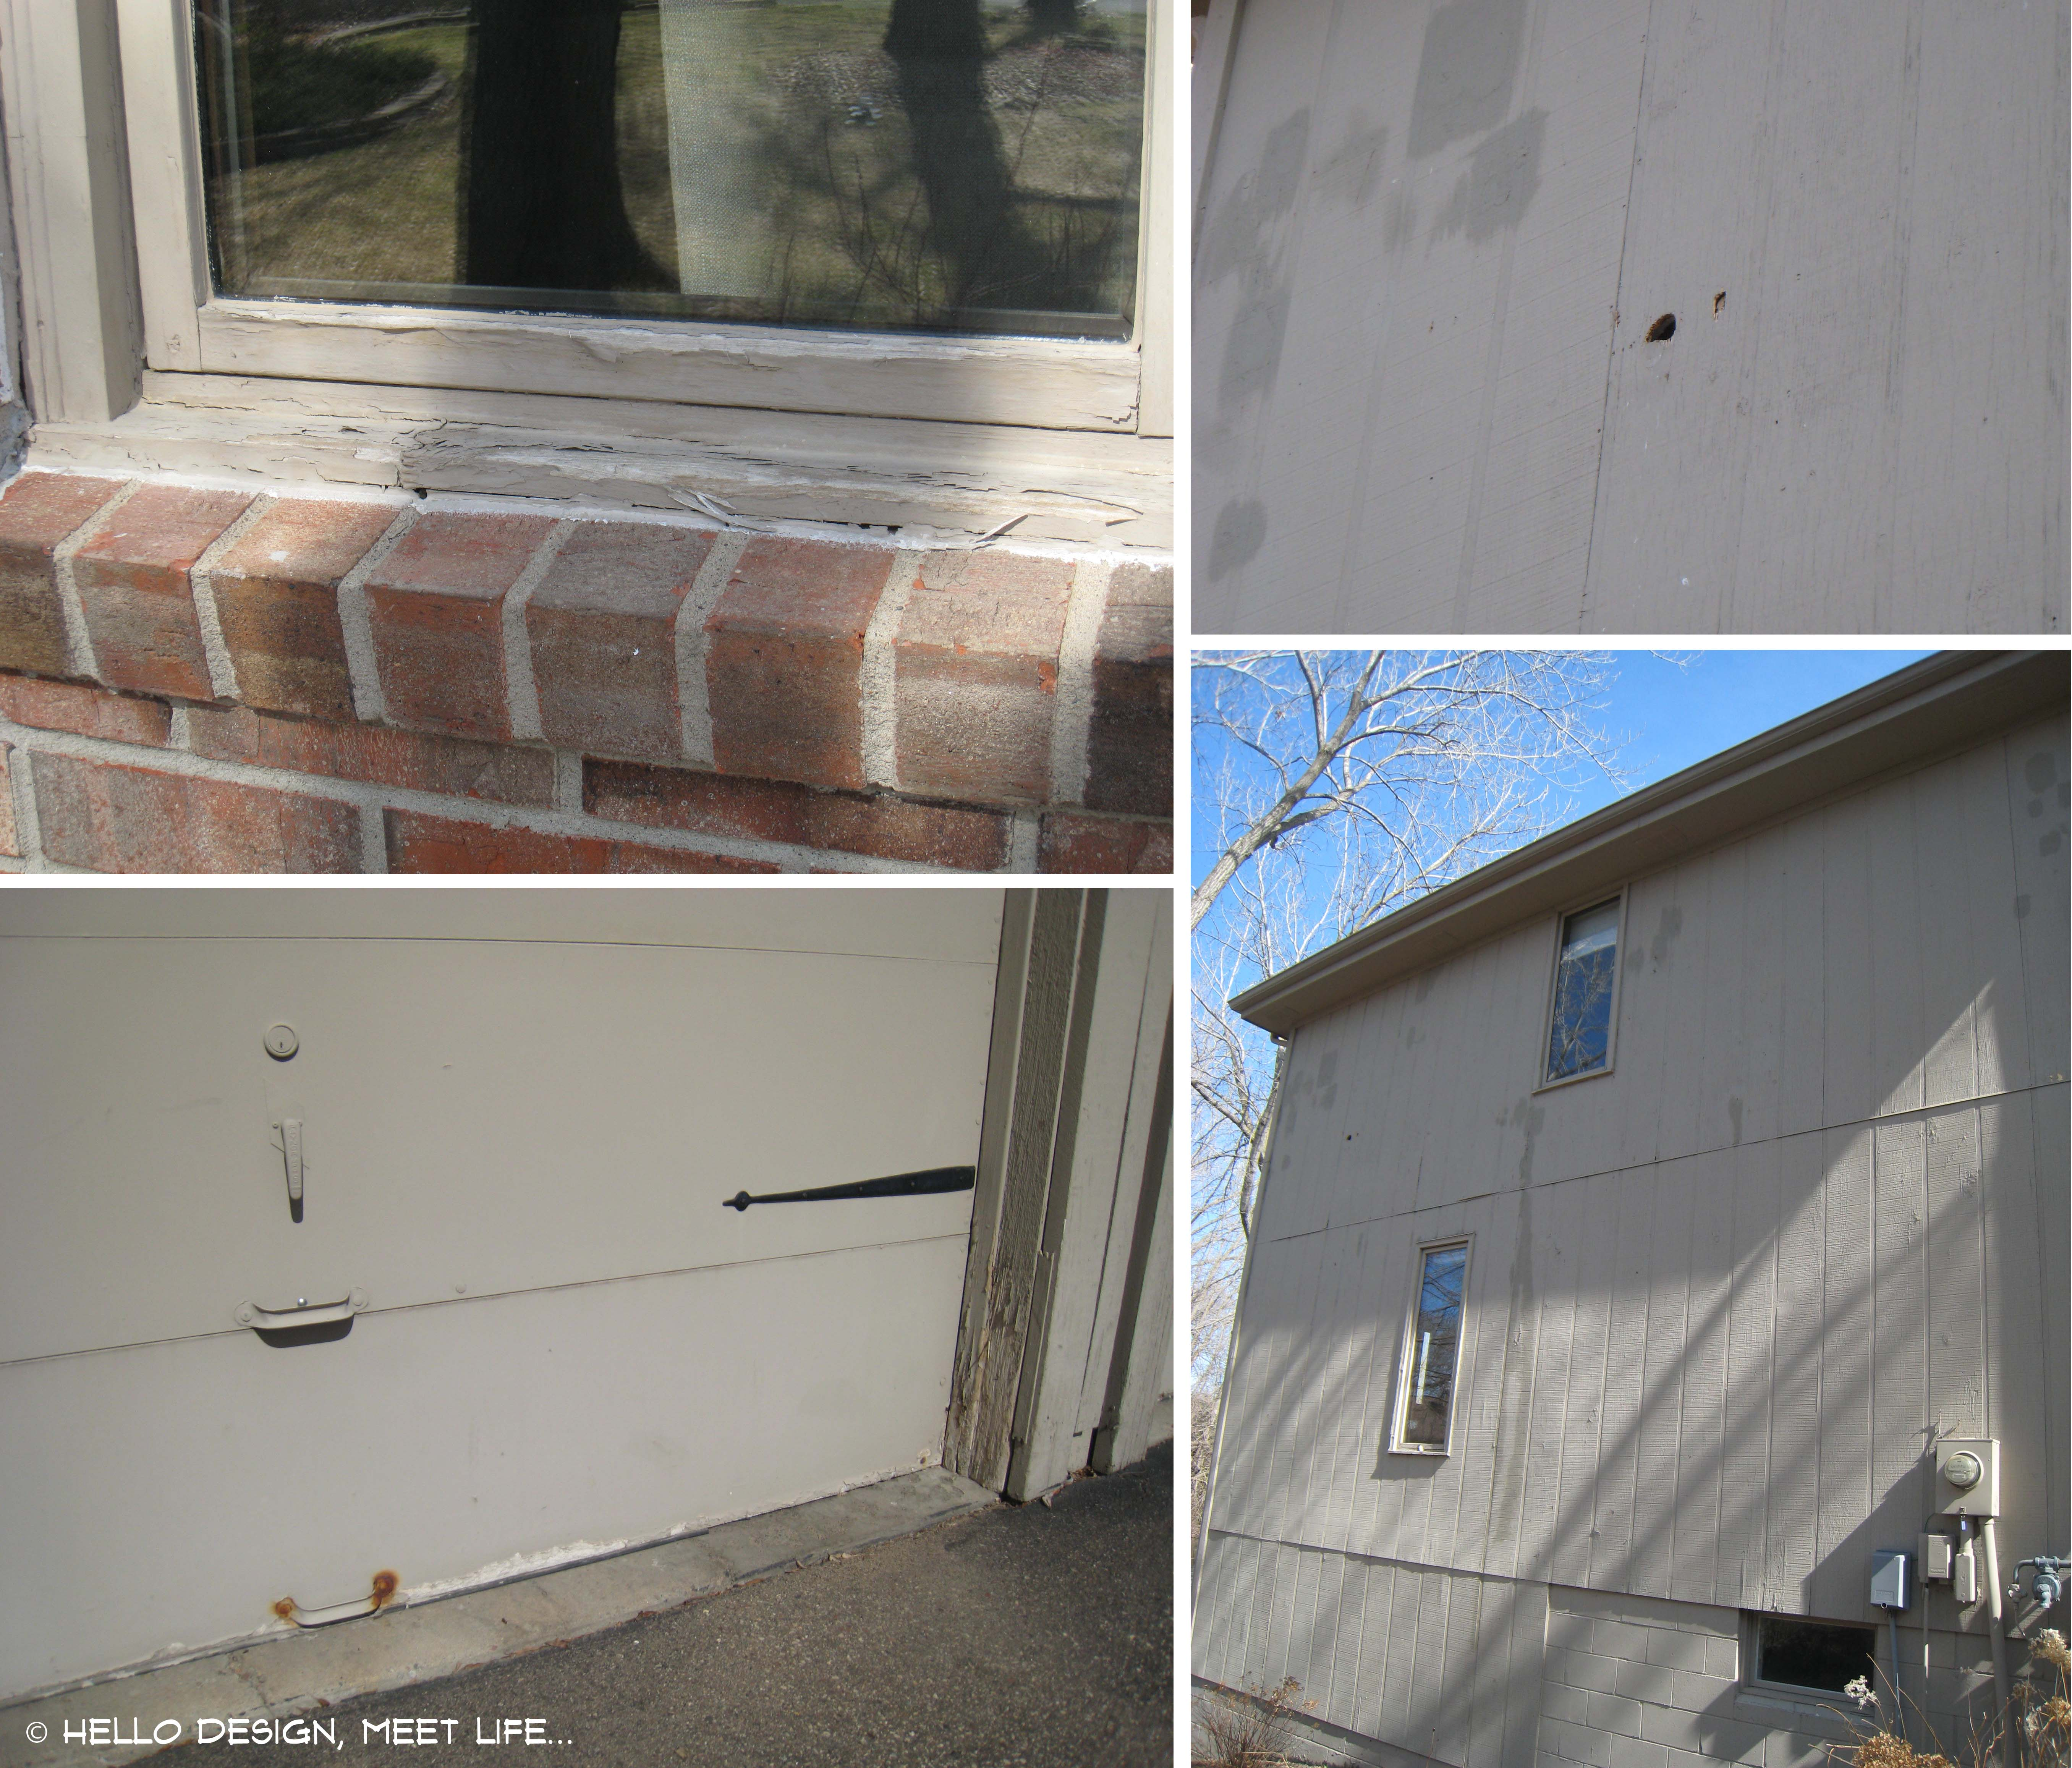 Hello design meet life a blog about what happens to our design ideas when real life - Exterior paint peeling concept ...